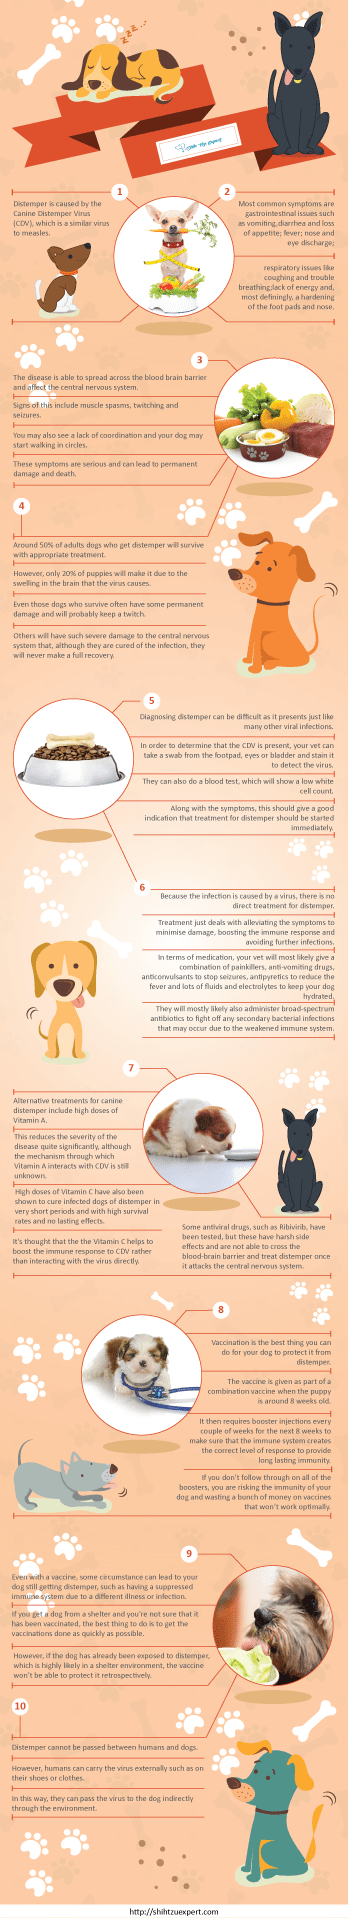 Canine Distemper [Please Read THIS before putting your Dog